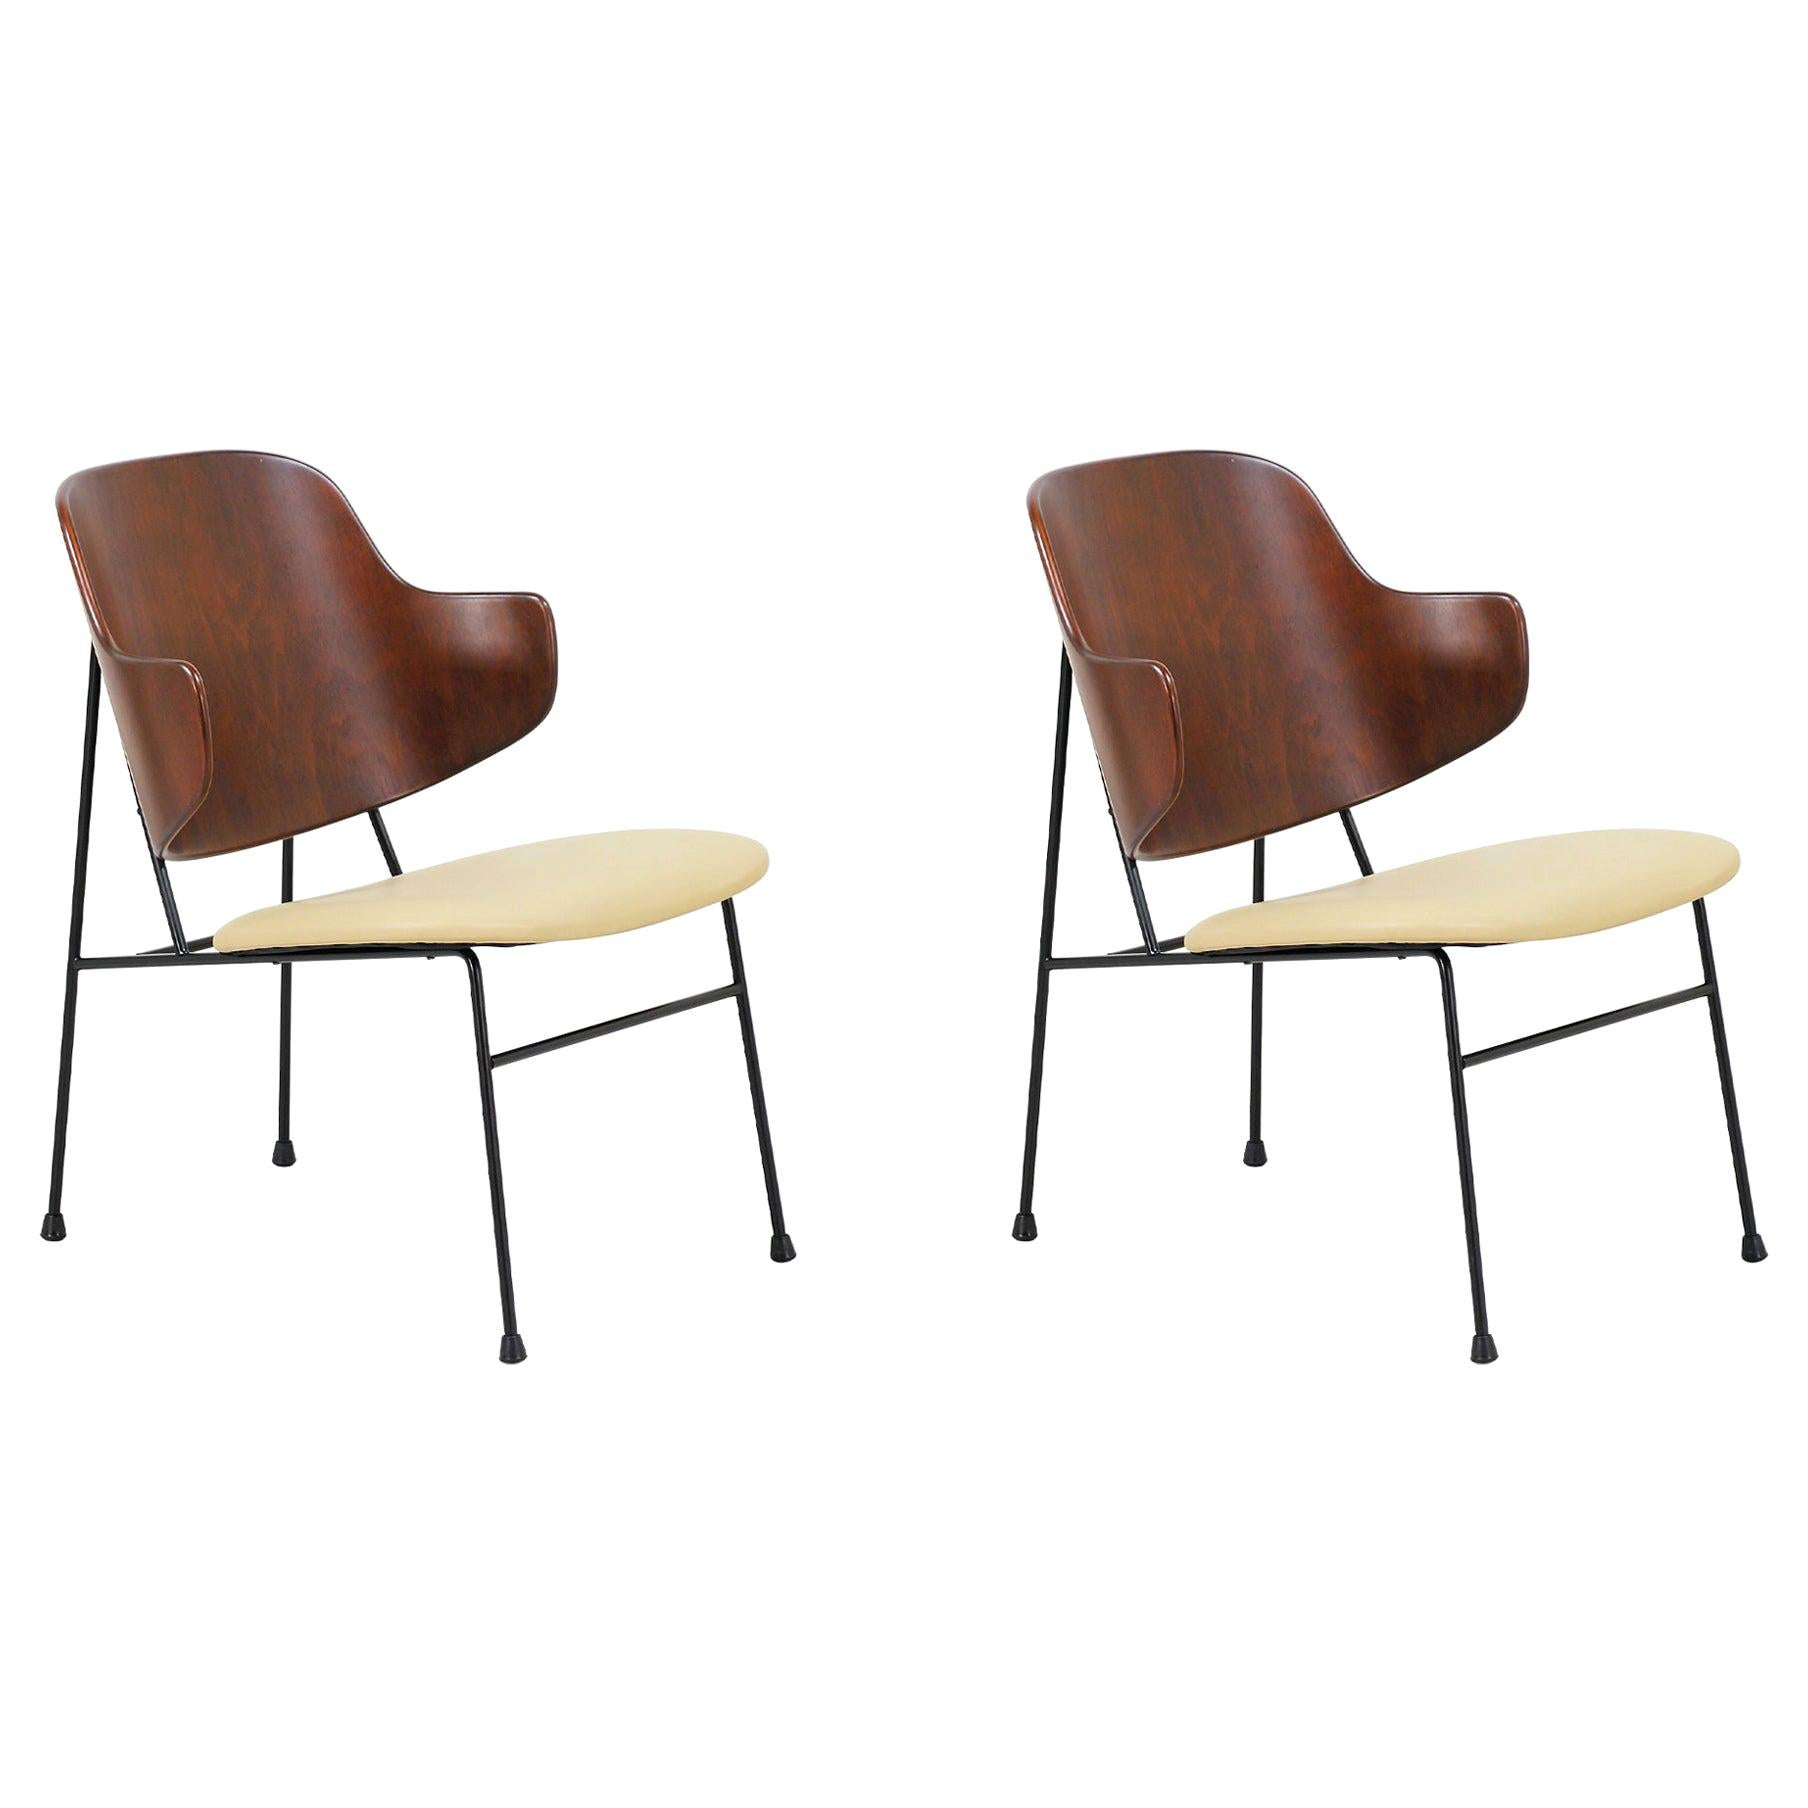 """Ib Kofod-Larsen """"Penguin"""" Iron and Leather Lounge Chairs for Selig"""